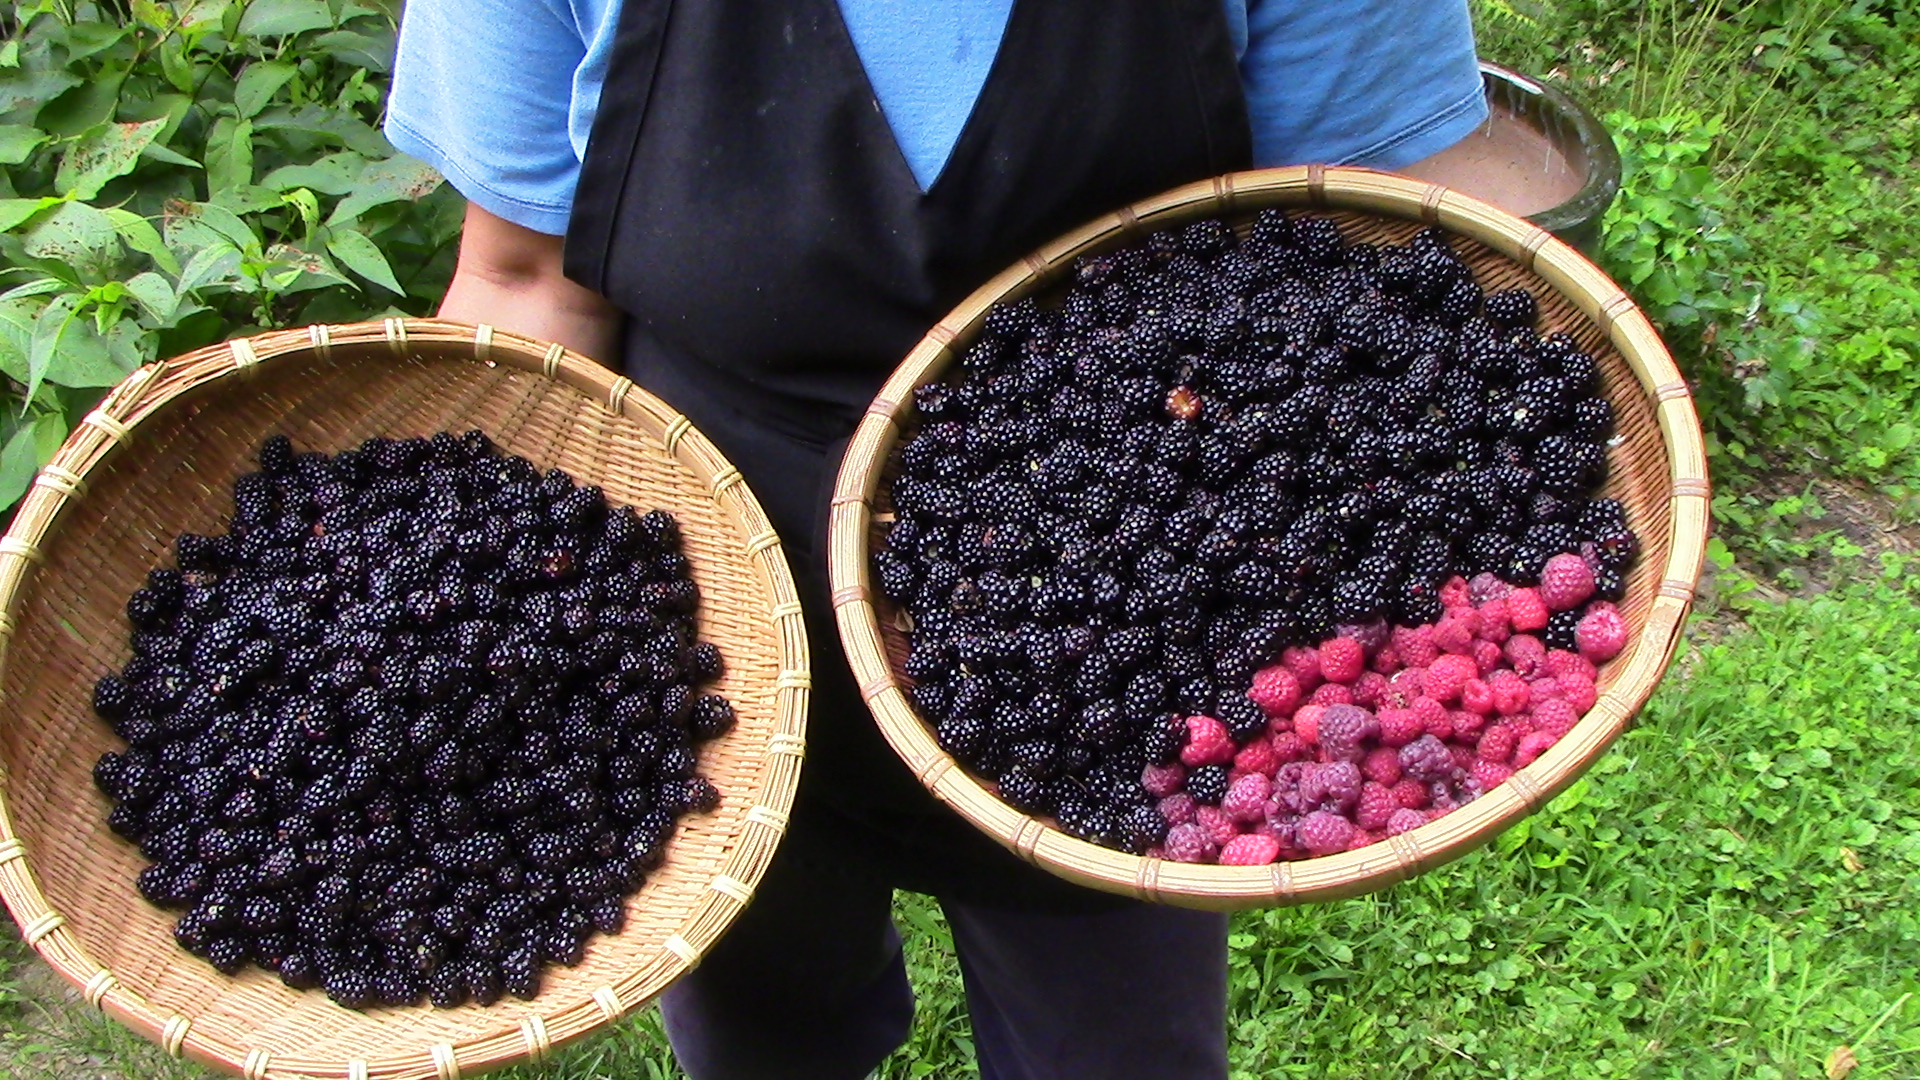 Berry picking in late July — blackberries and red & purple raspberries. Most of these berries were made into a Fruit Coulis and then frozen. From the Fruit Coulis I then make Fruit Mousse Pie, among other tasty things. The pie you see below was made this past Friday from red raspberries I picked in July.